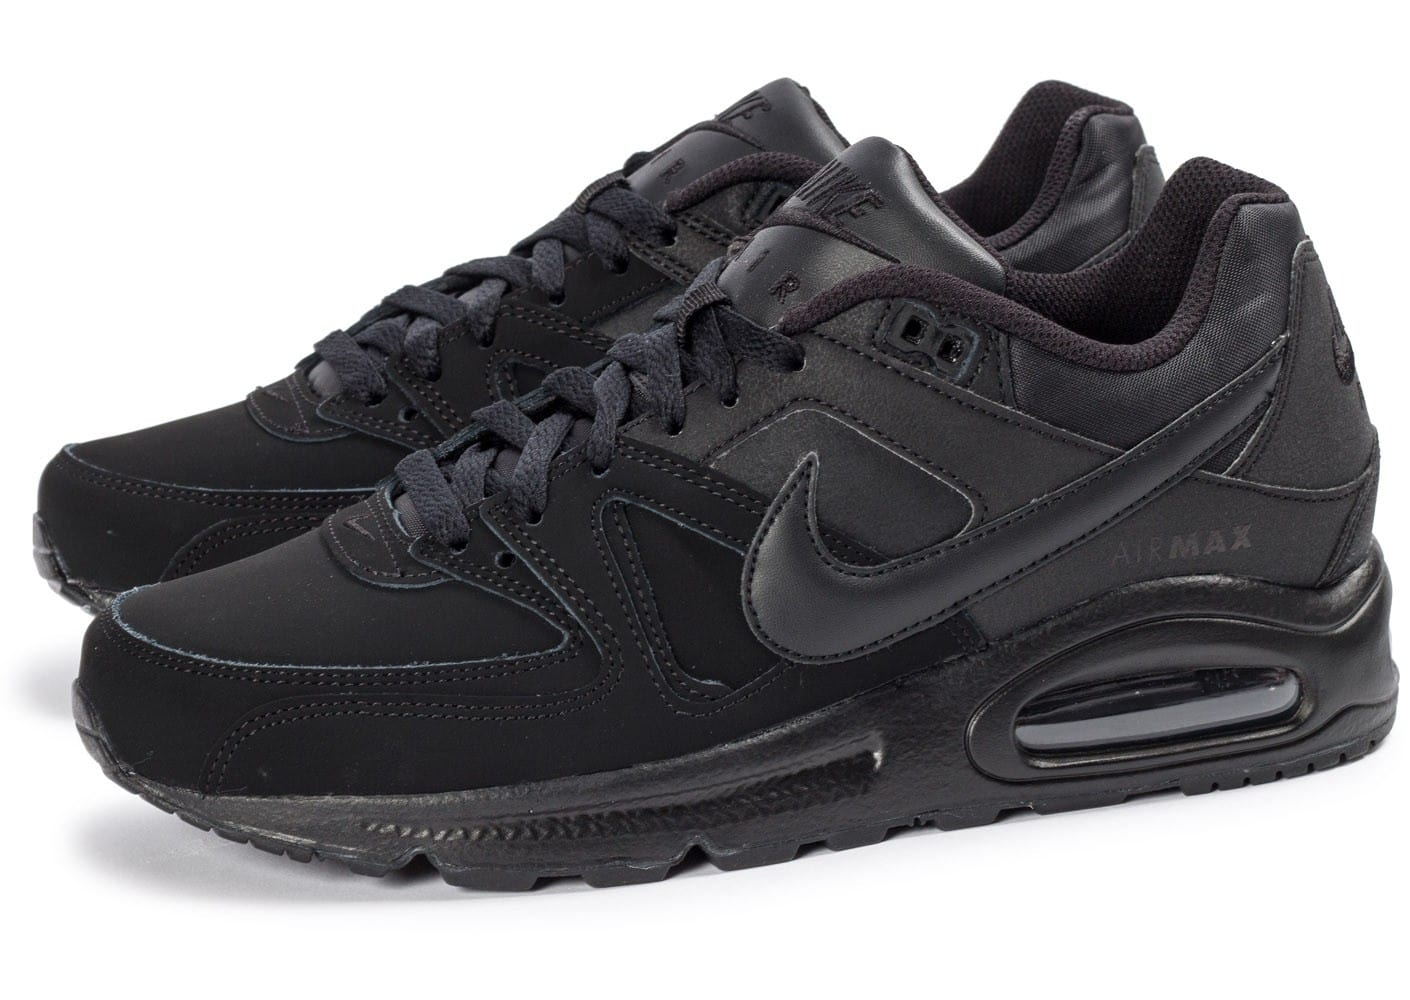 15628bd10df Réduction authentique air max command homme noir Baskets - panier-bio-cressonniere.fr.  air max command homme noir